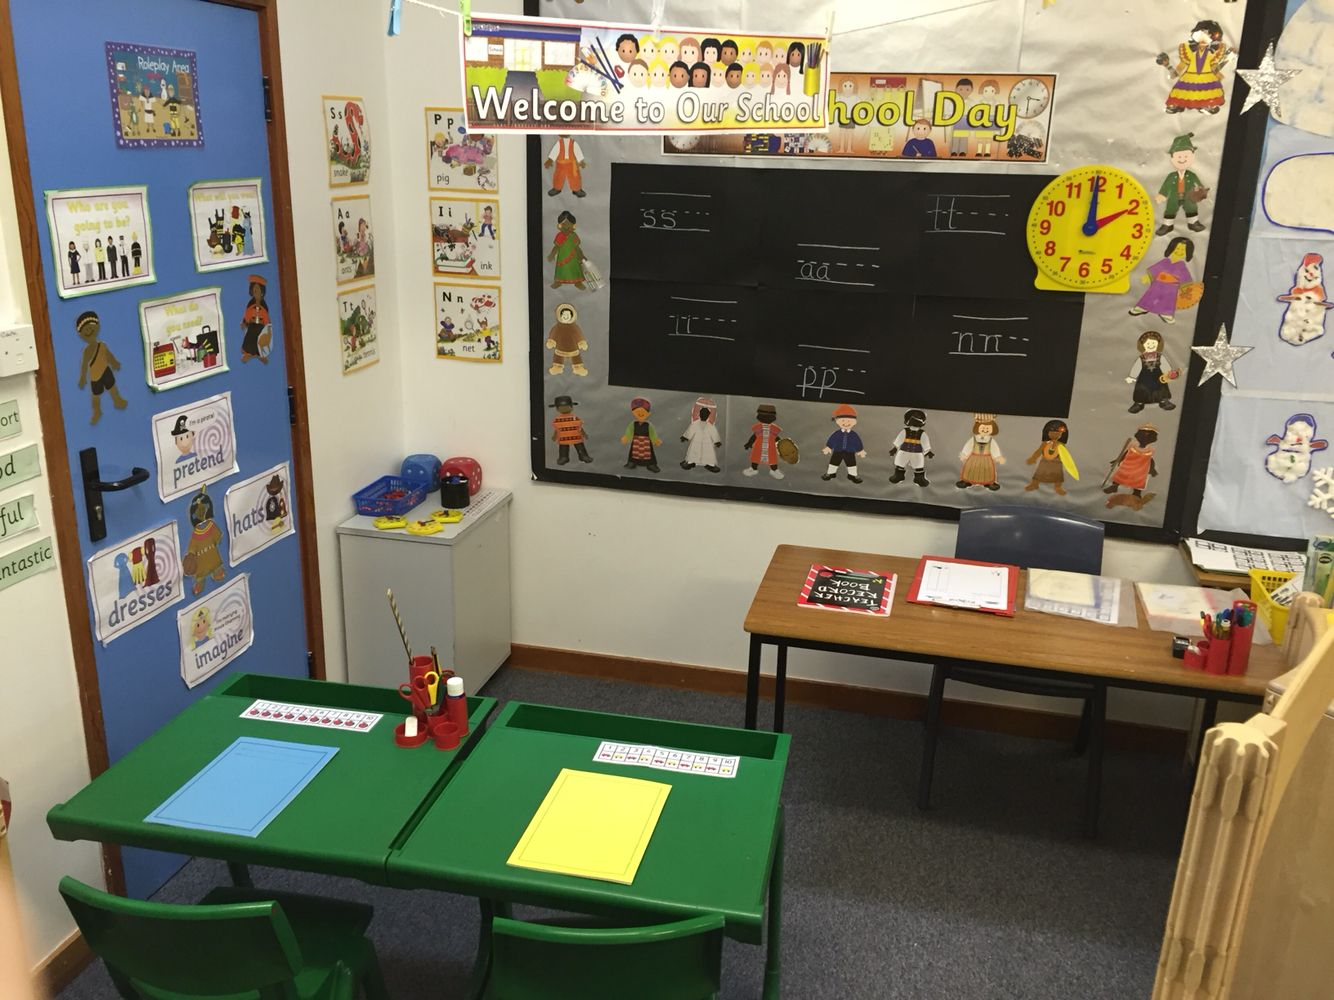 Set Up A School Role Play Area For Preschool Children To